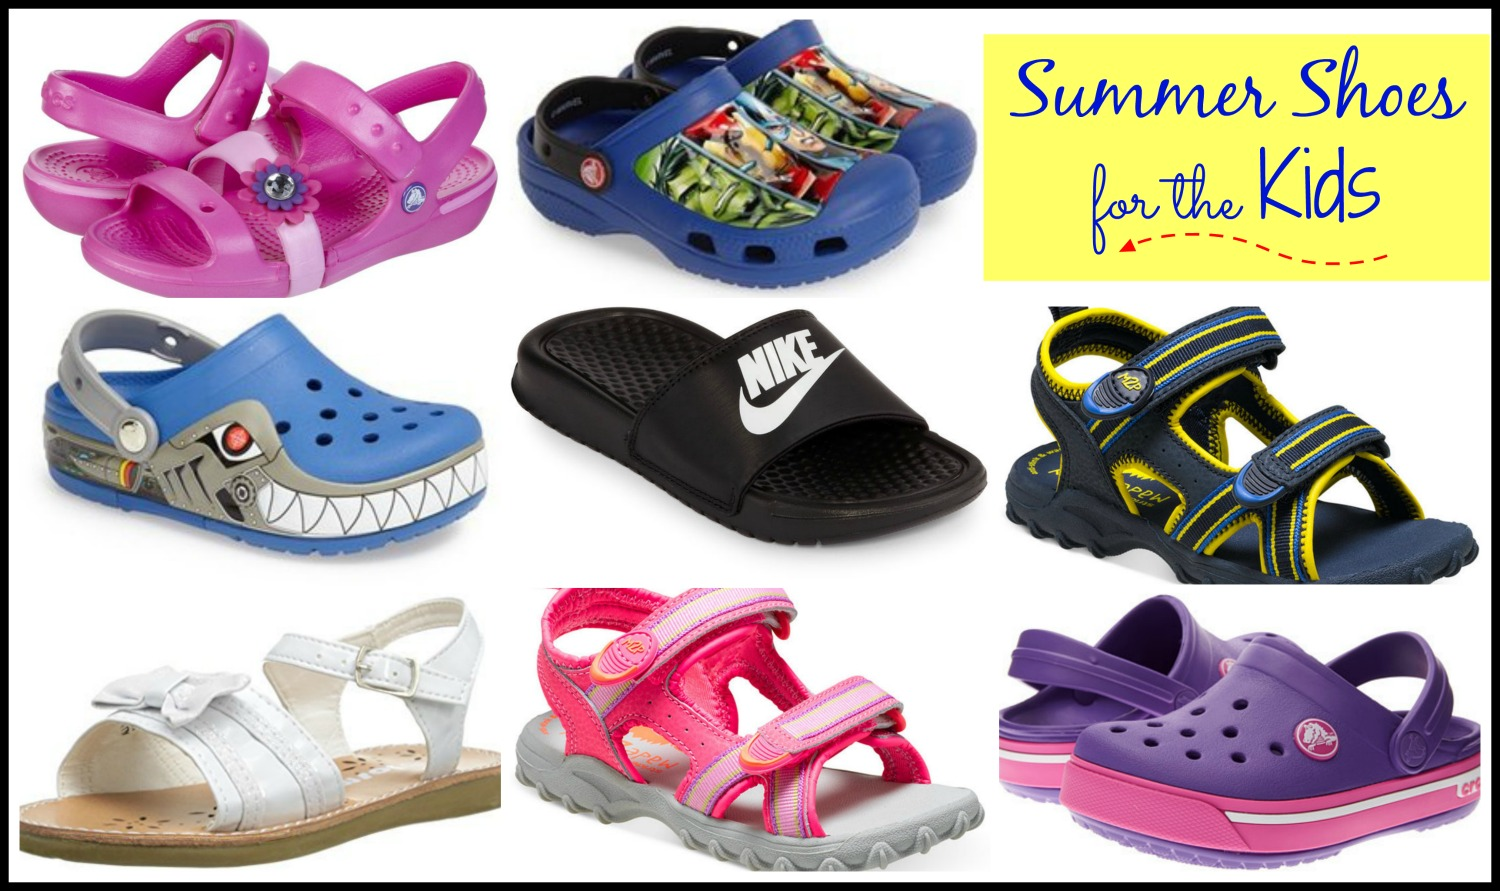 Summer Shoes for the Kids - The Resourceful Mama